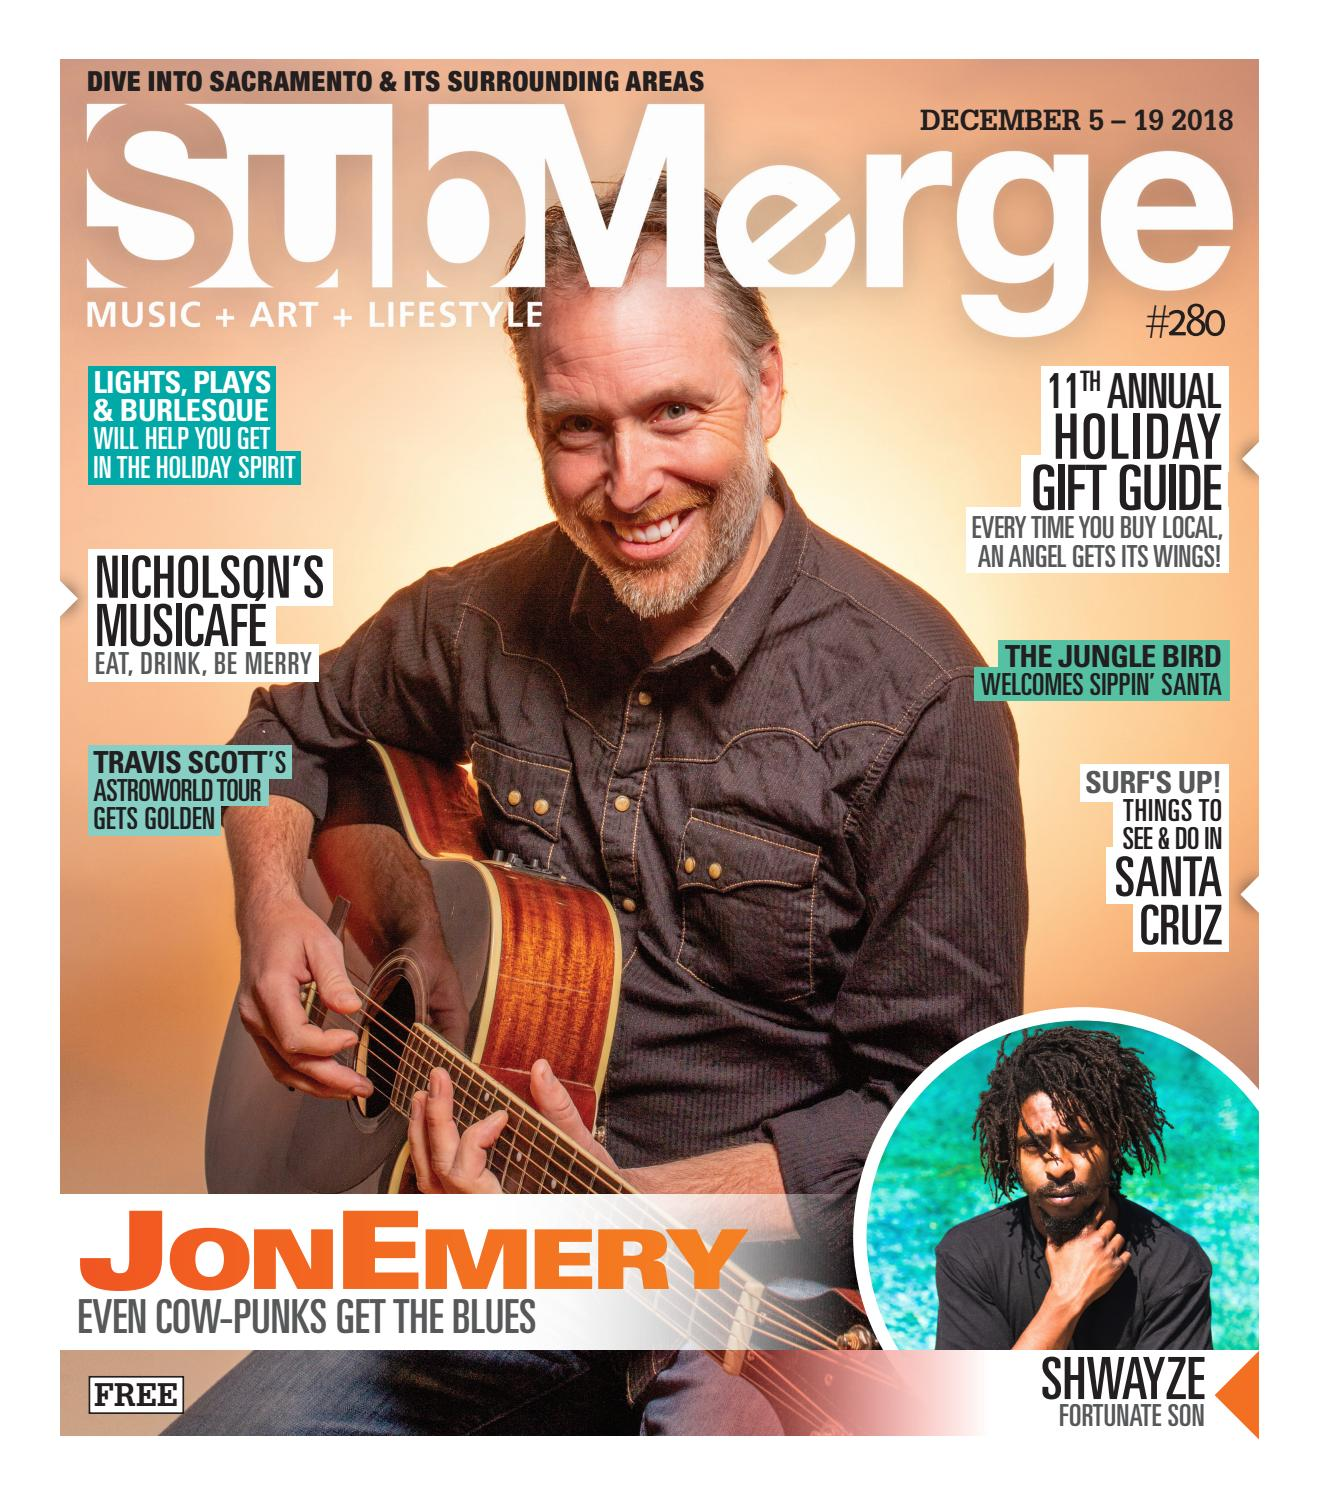 Submerge Magazine: Issue 280 (December 5 - December 19, 2018